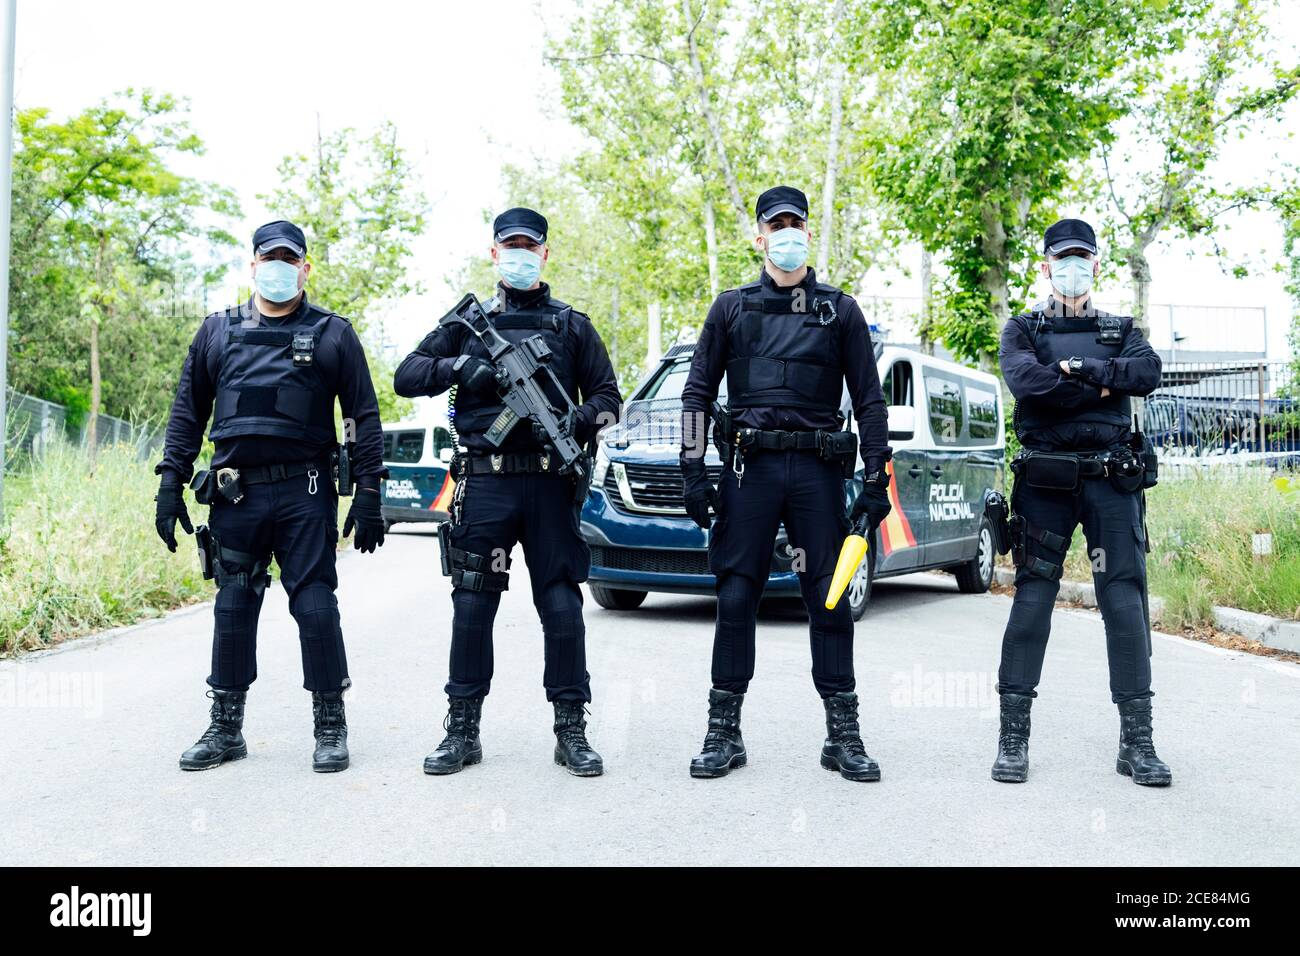 Full Body Squad Of Spanish Police Officers In Protective Gears With Guns Wearing Medical Masks During Patrolling Street Stock Photo Alamy